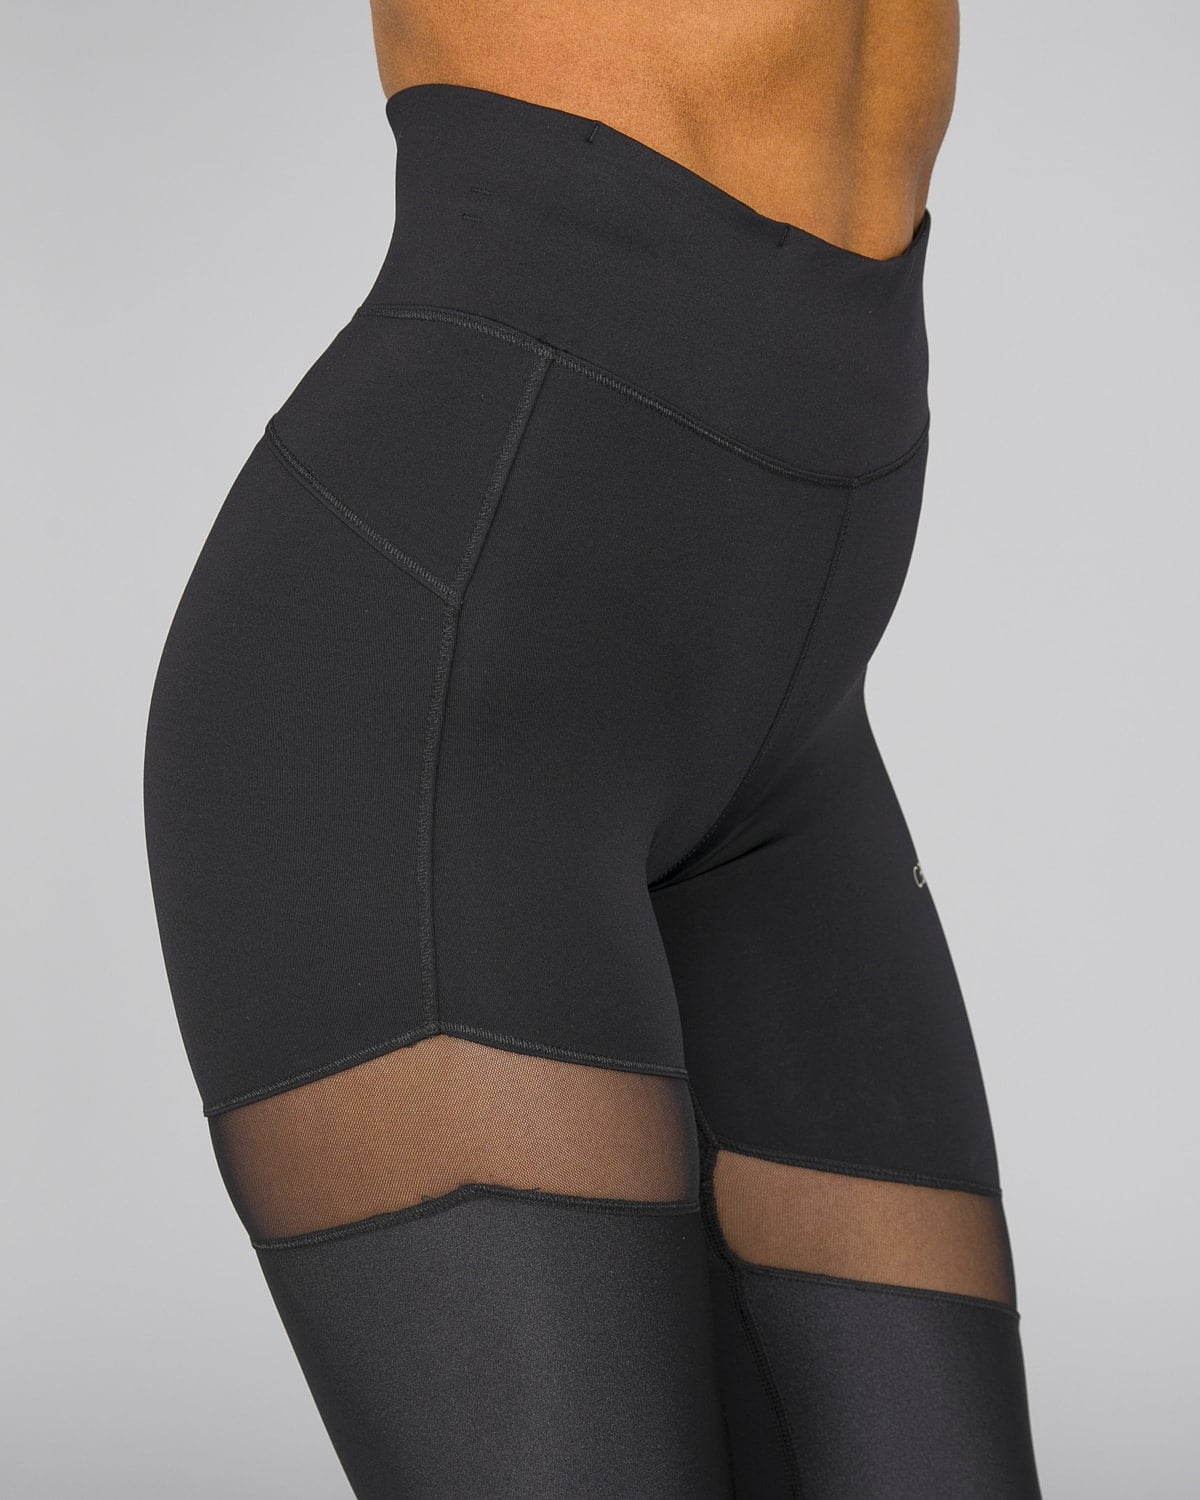 Casall Golden Lux 7:8 Tights13